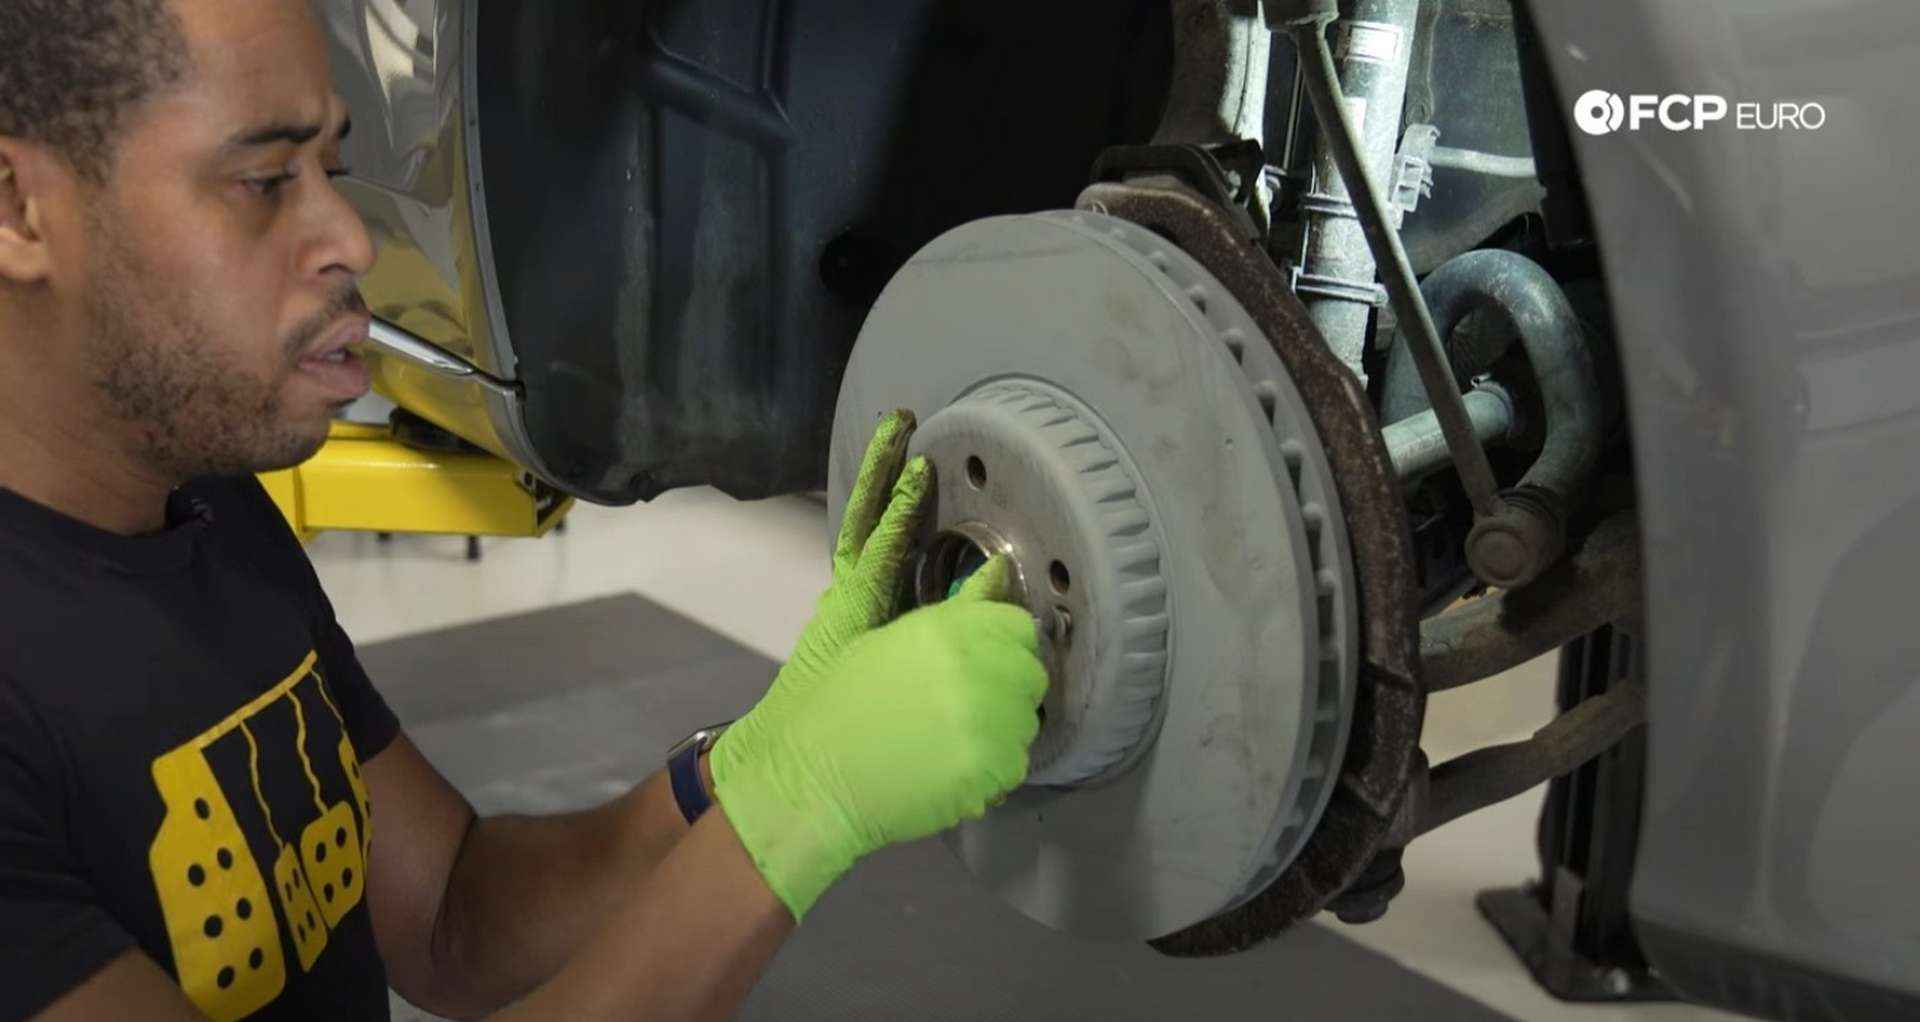 DIY Mercedes-Benz W205 Front Brake Service installing the new rotor and set screw